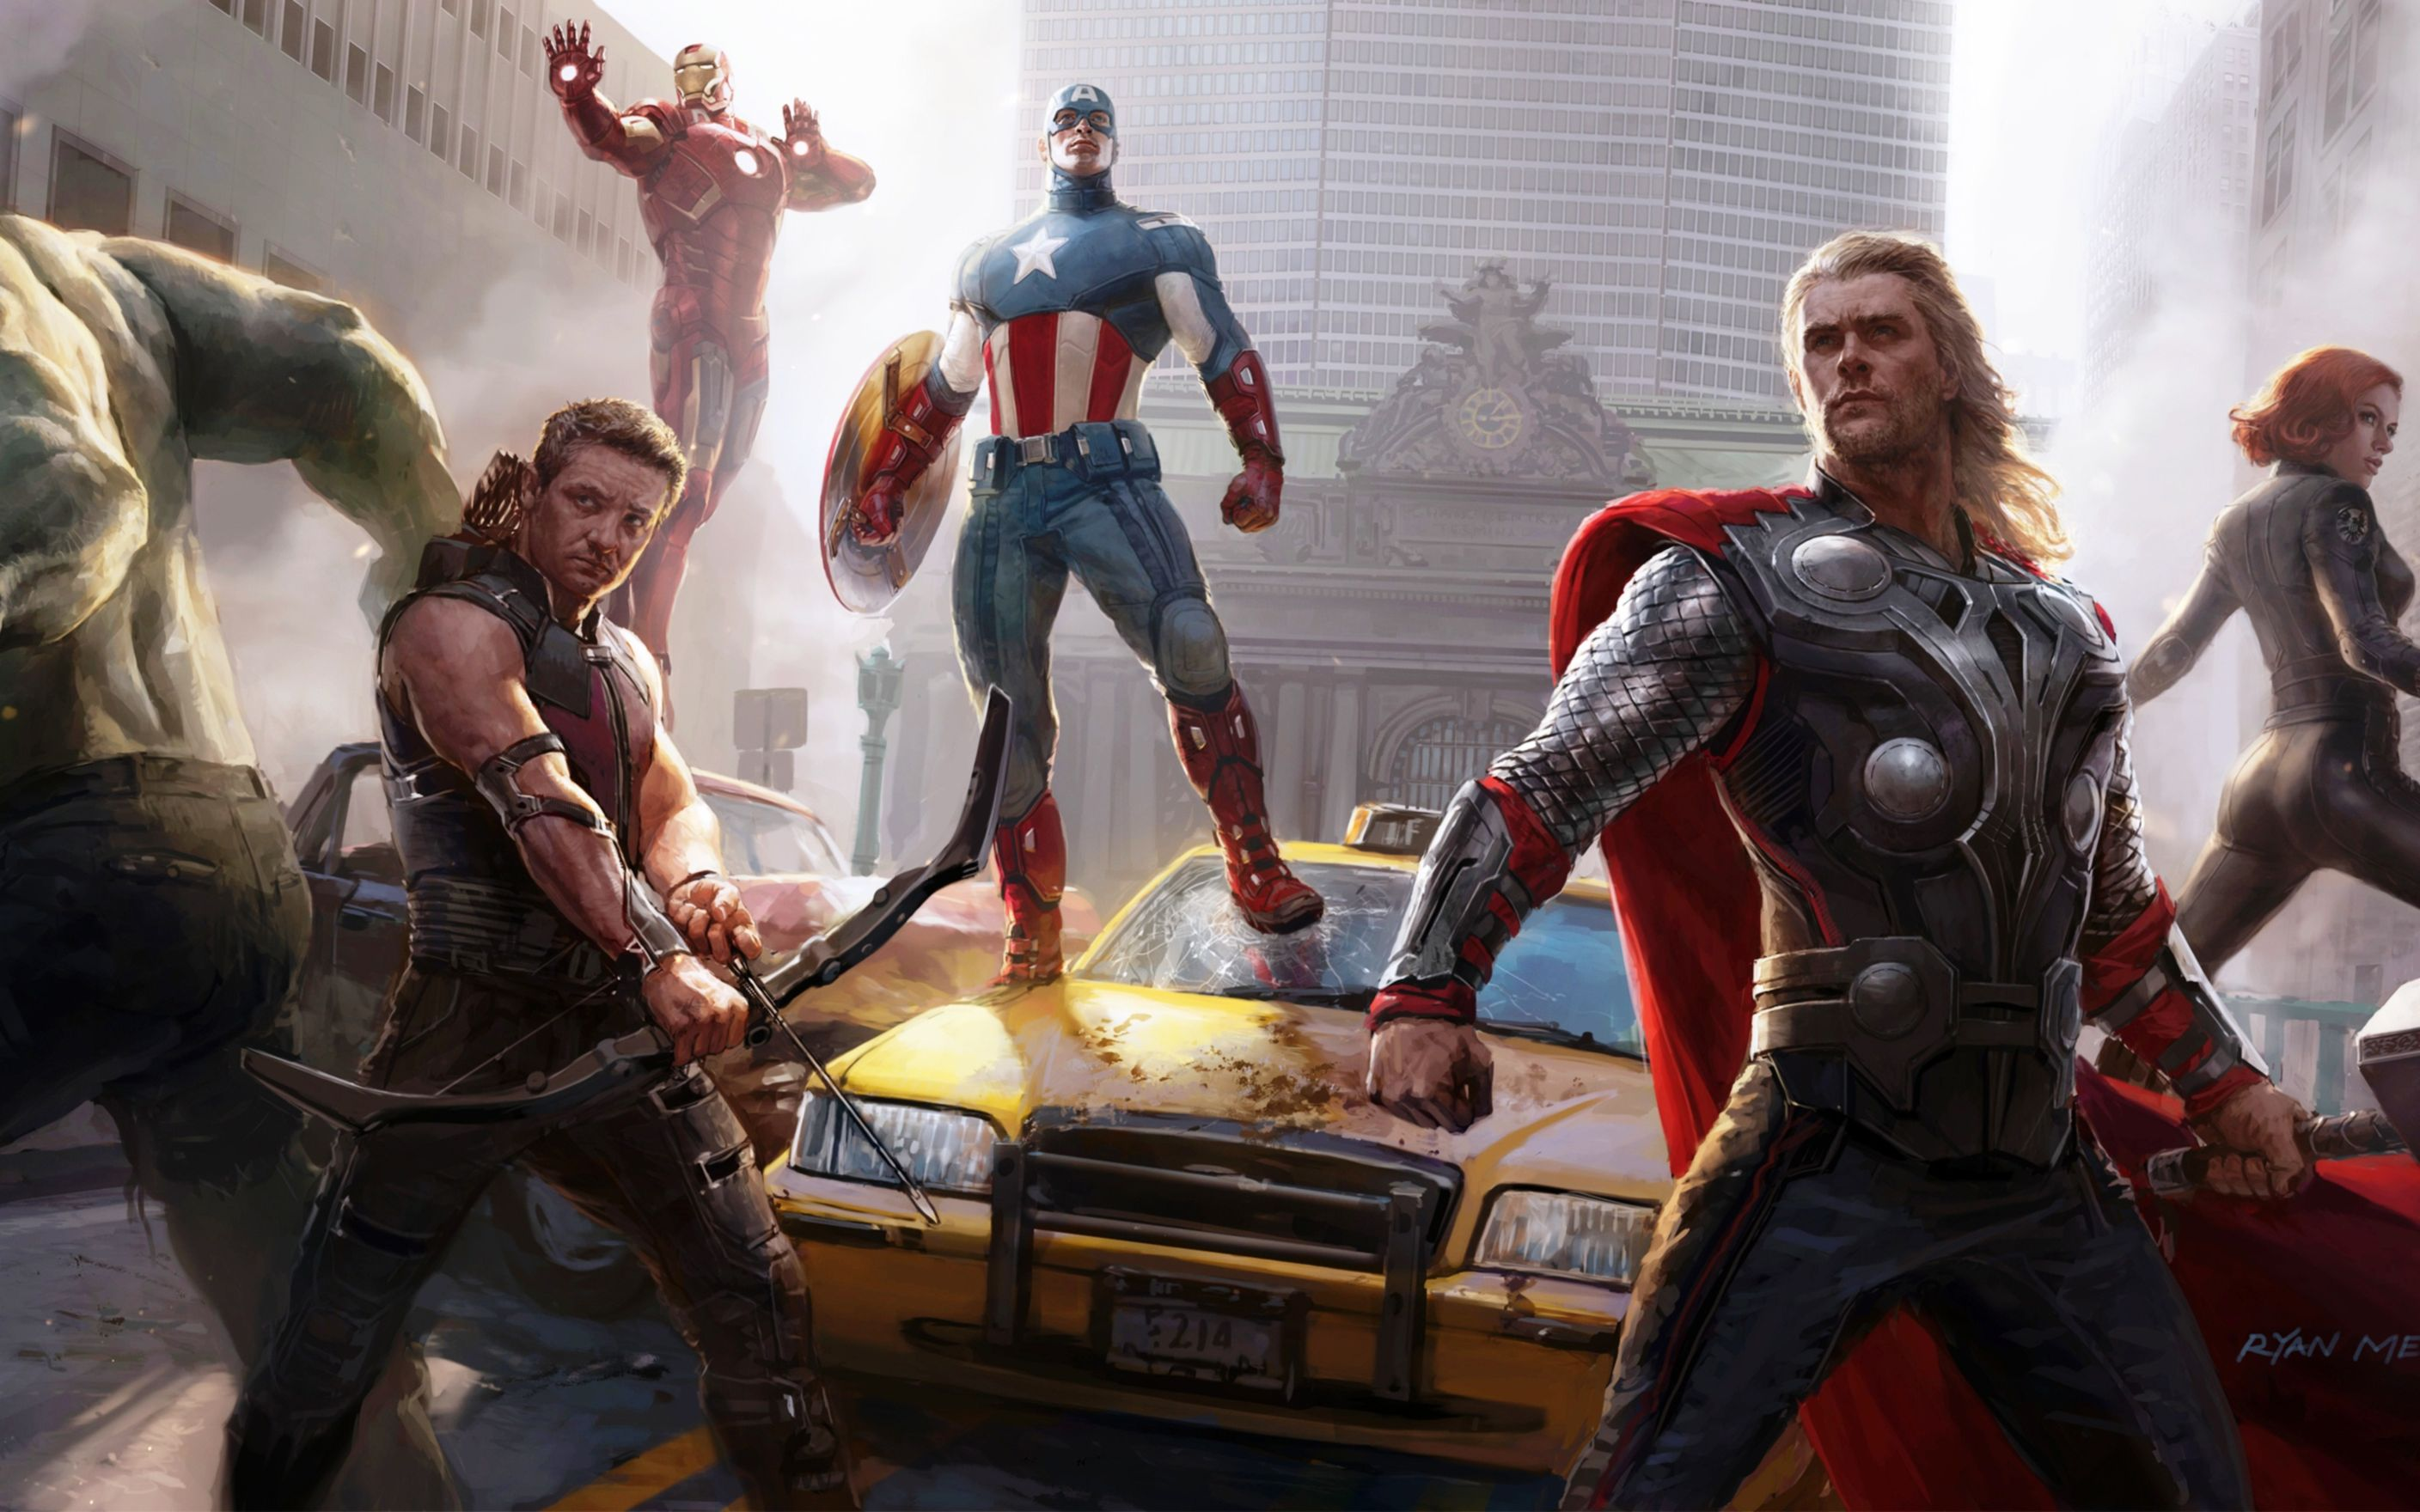 Download free HD The Avengers Concept Art Wide Wallpaper, image